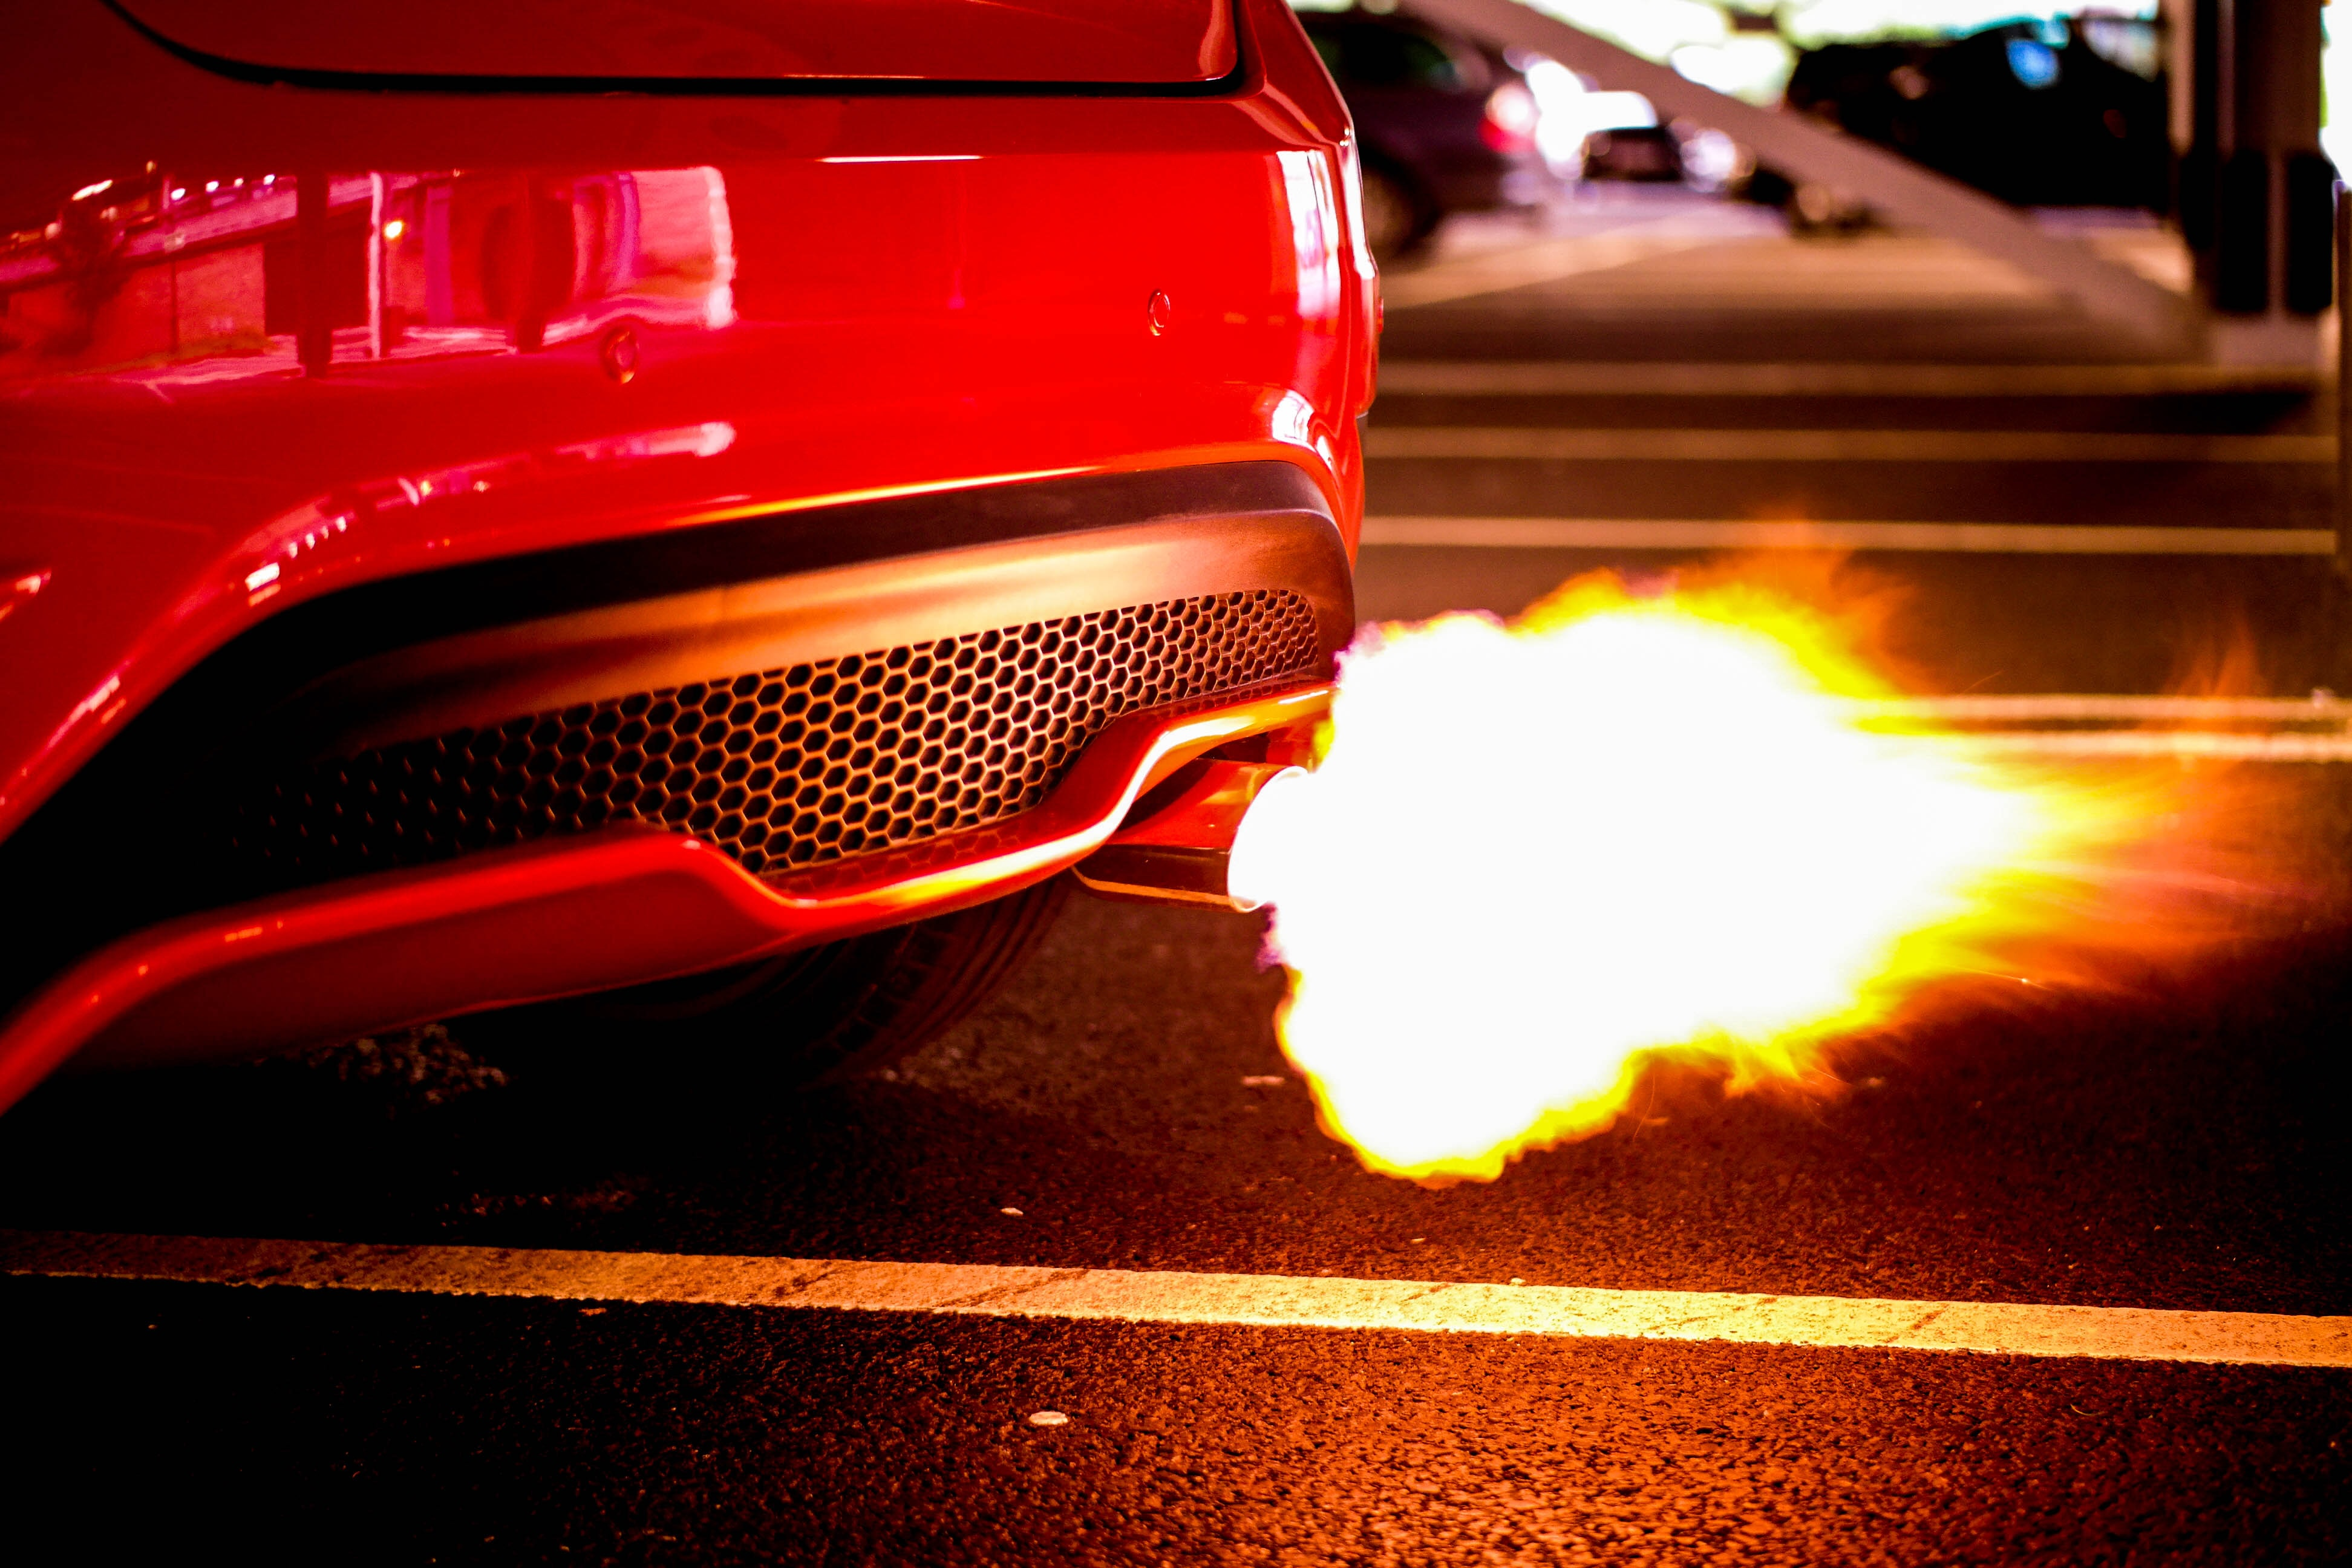 A Red Sports Car Sputtering A Flame In Its Exhaust In A Night Time Setting  Beside